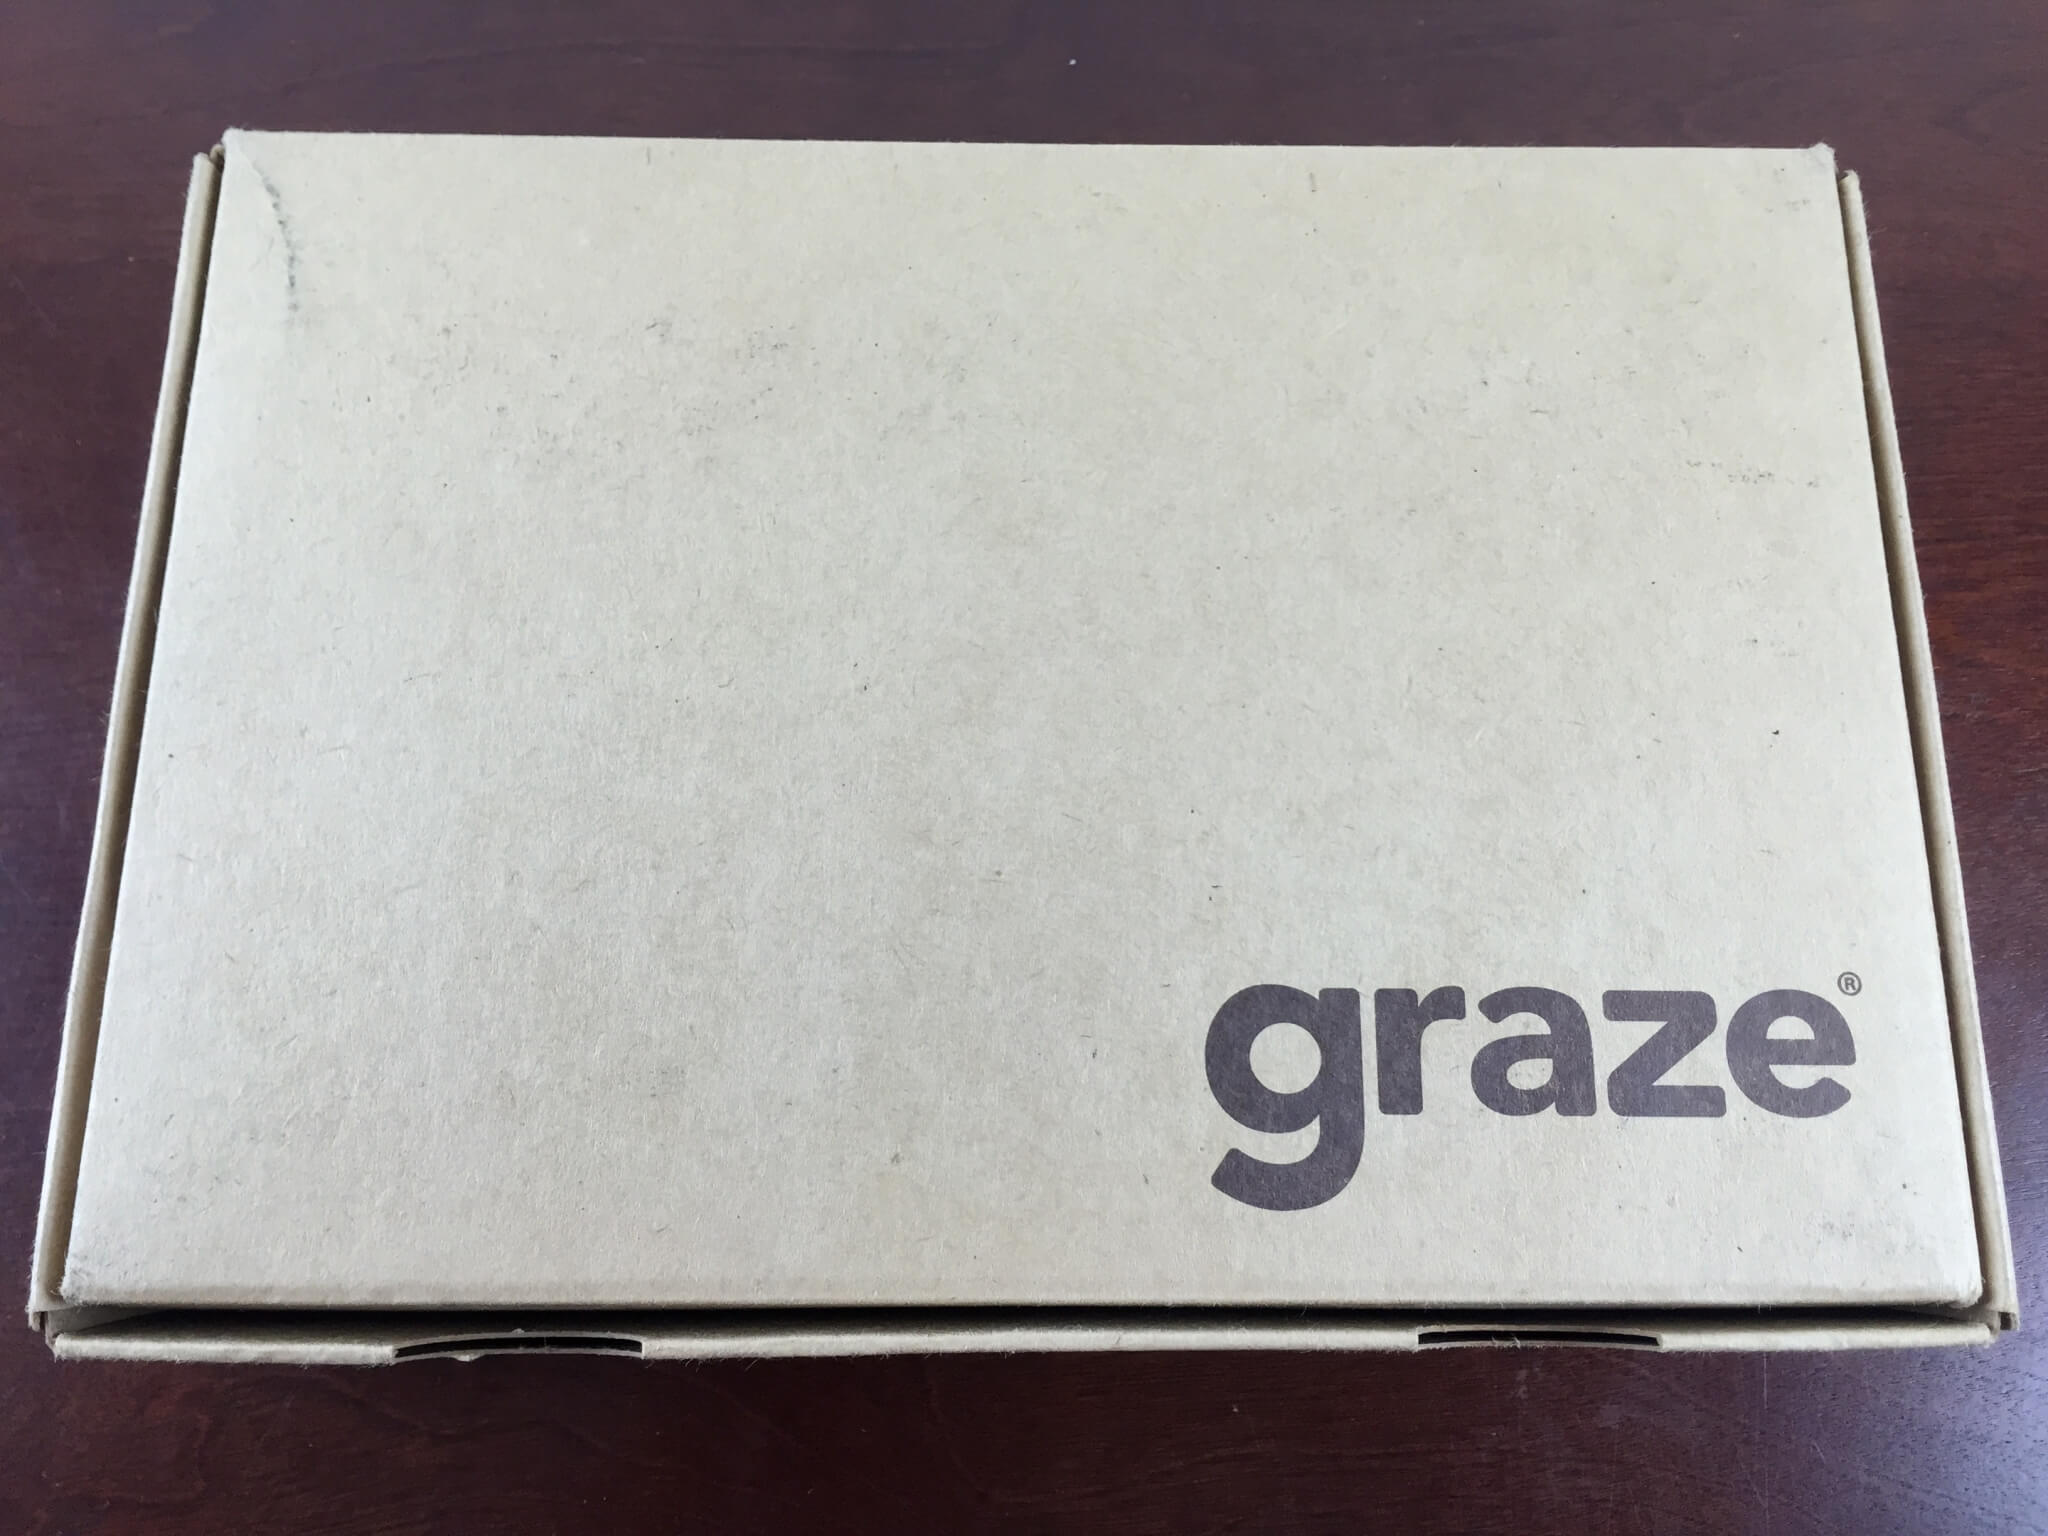 Details: Get Wholesome snacks delivered + Join Graze today and get your first box FREE. Include nearby city with my comment to help other users. Post Comment. Comment Posted. Post Another Comment. Expired Coupons. SALE. Sale. Save. Black Friday Sale! Free First Box When You Join Today © RetailMeNot, Inc.